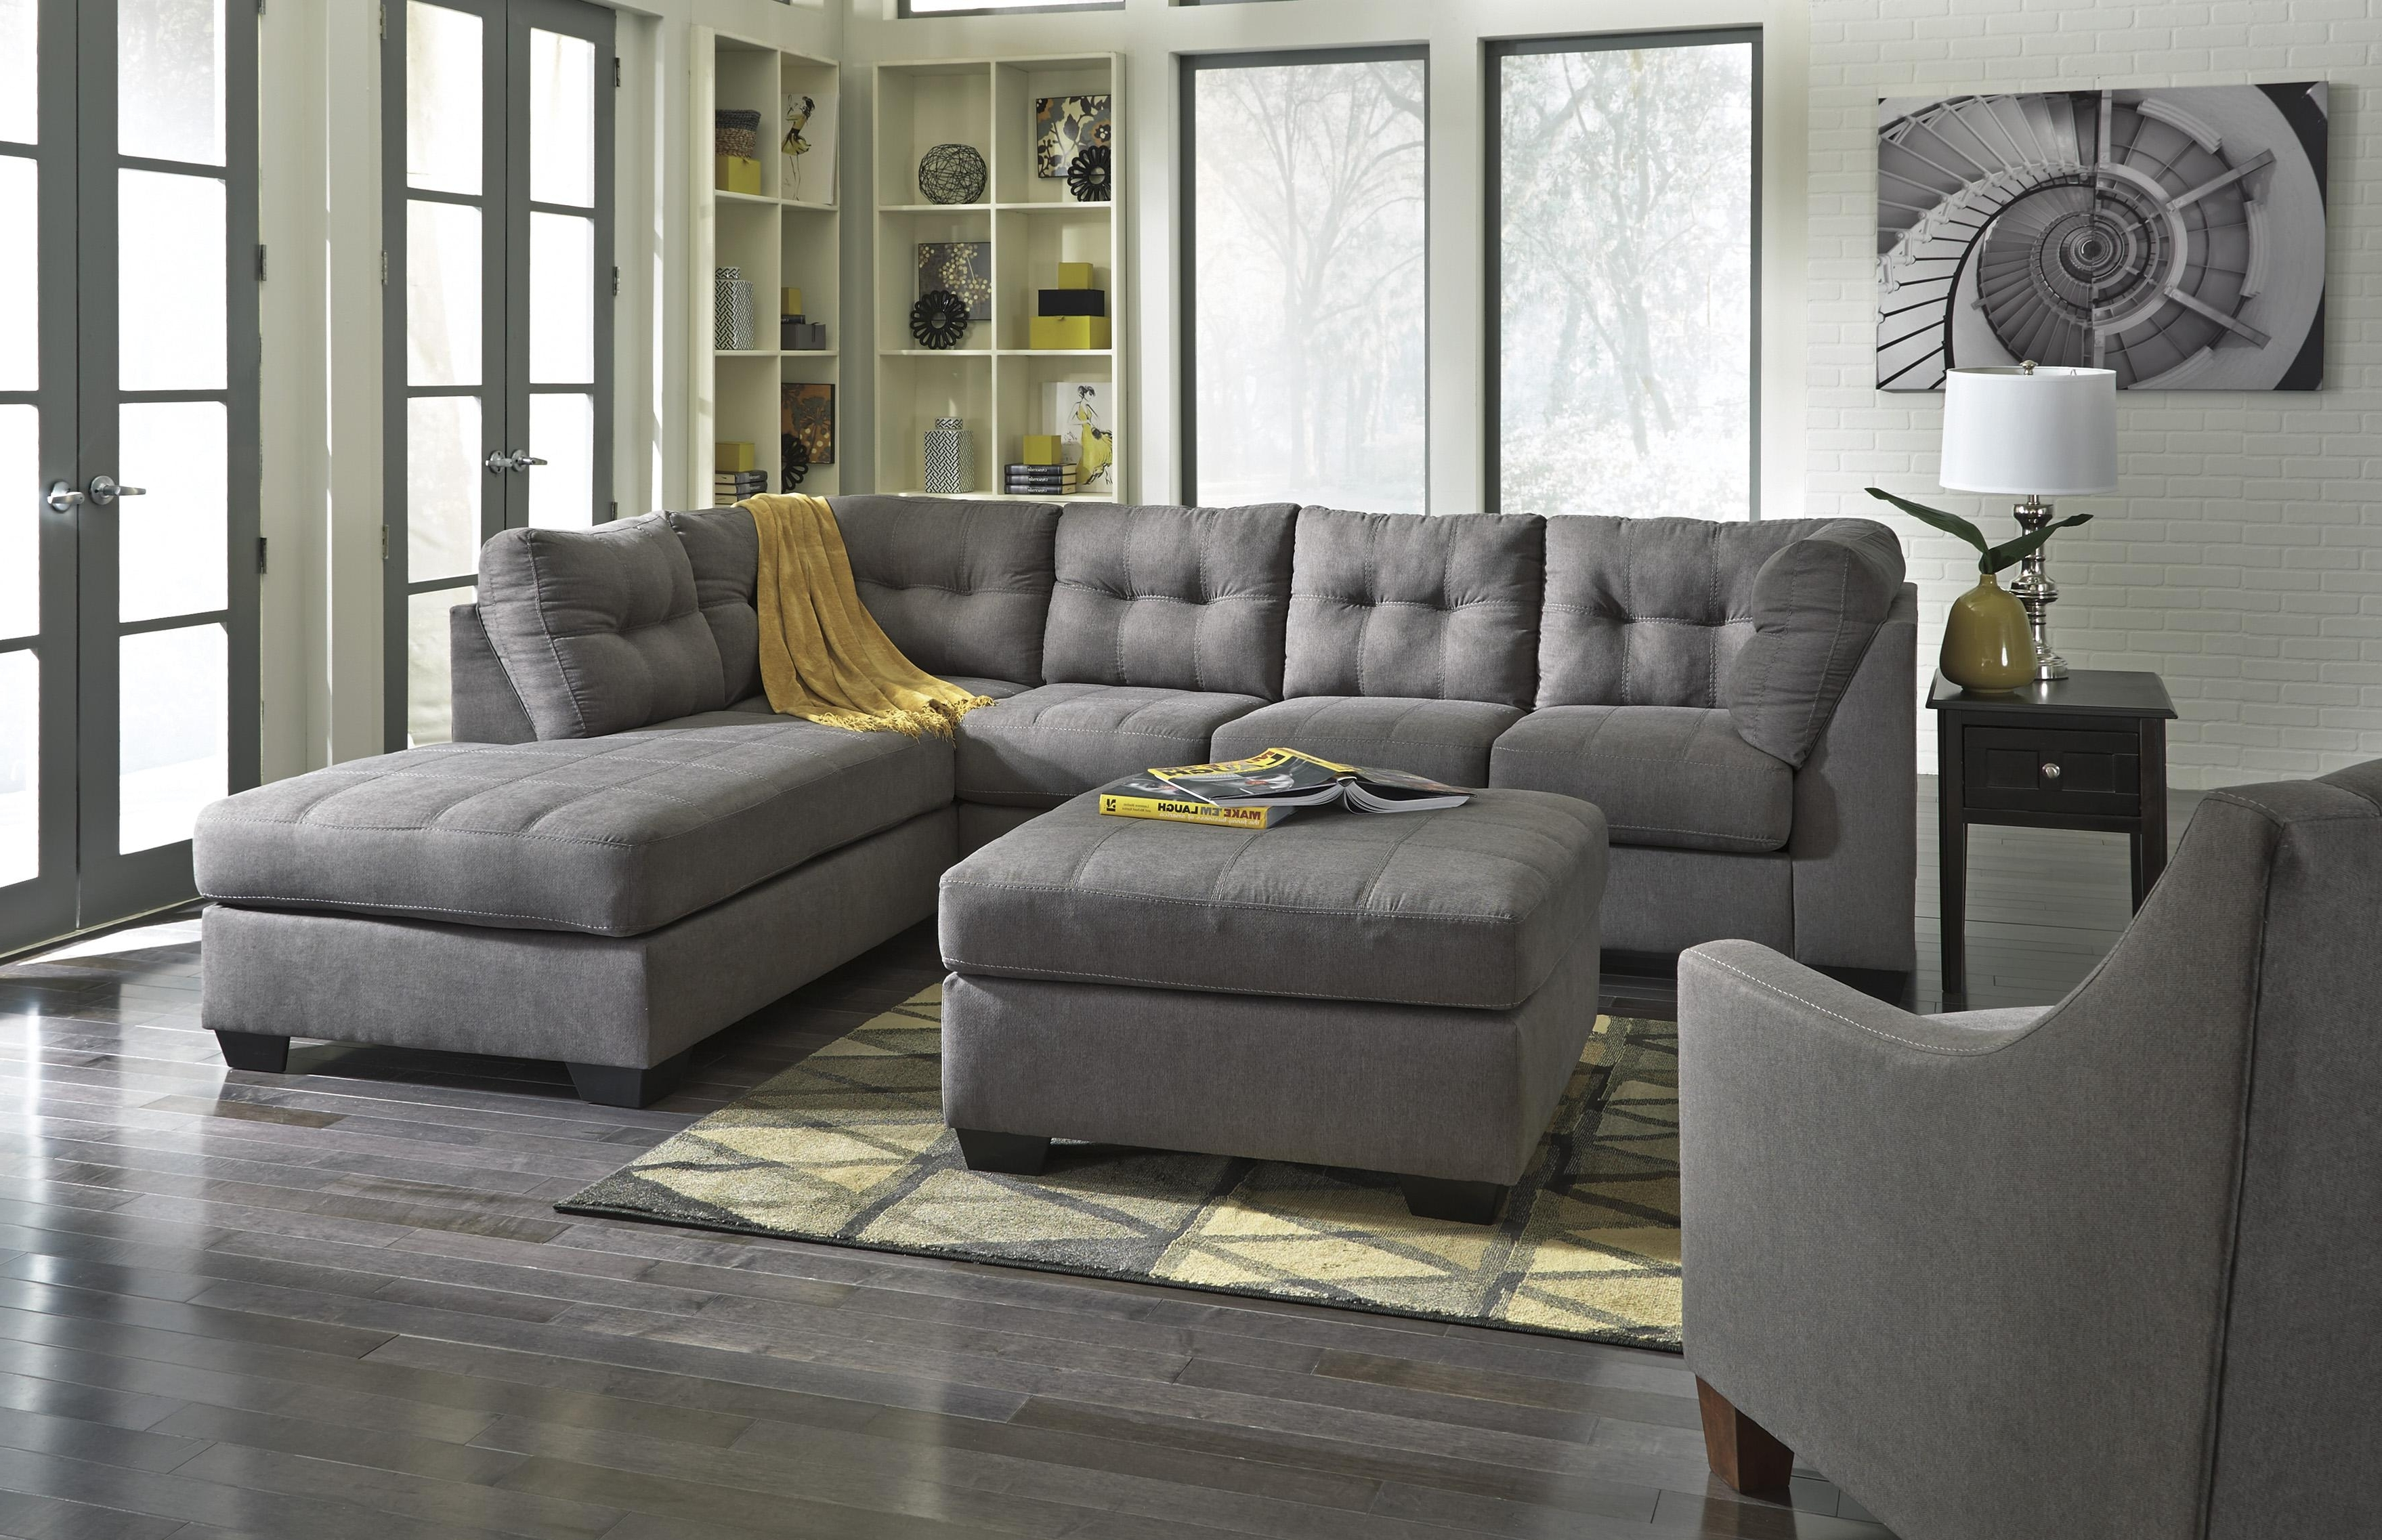 Sectionals With Ottoman And Chaise Intended For Latest Benchcraft Maier – Charcoal 2 Piece Sectional With Right Chaise (View 8 of 15)